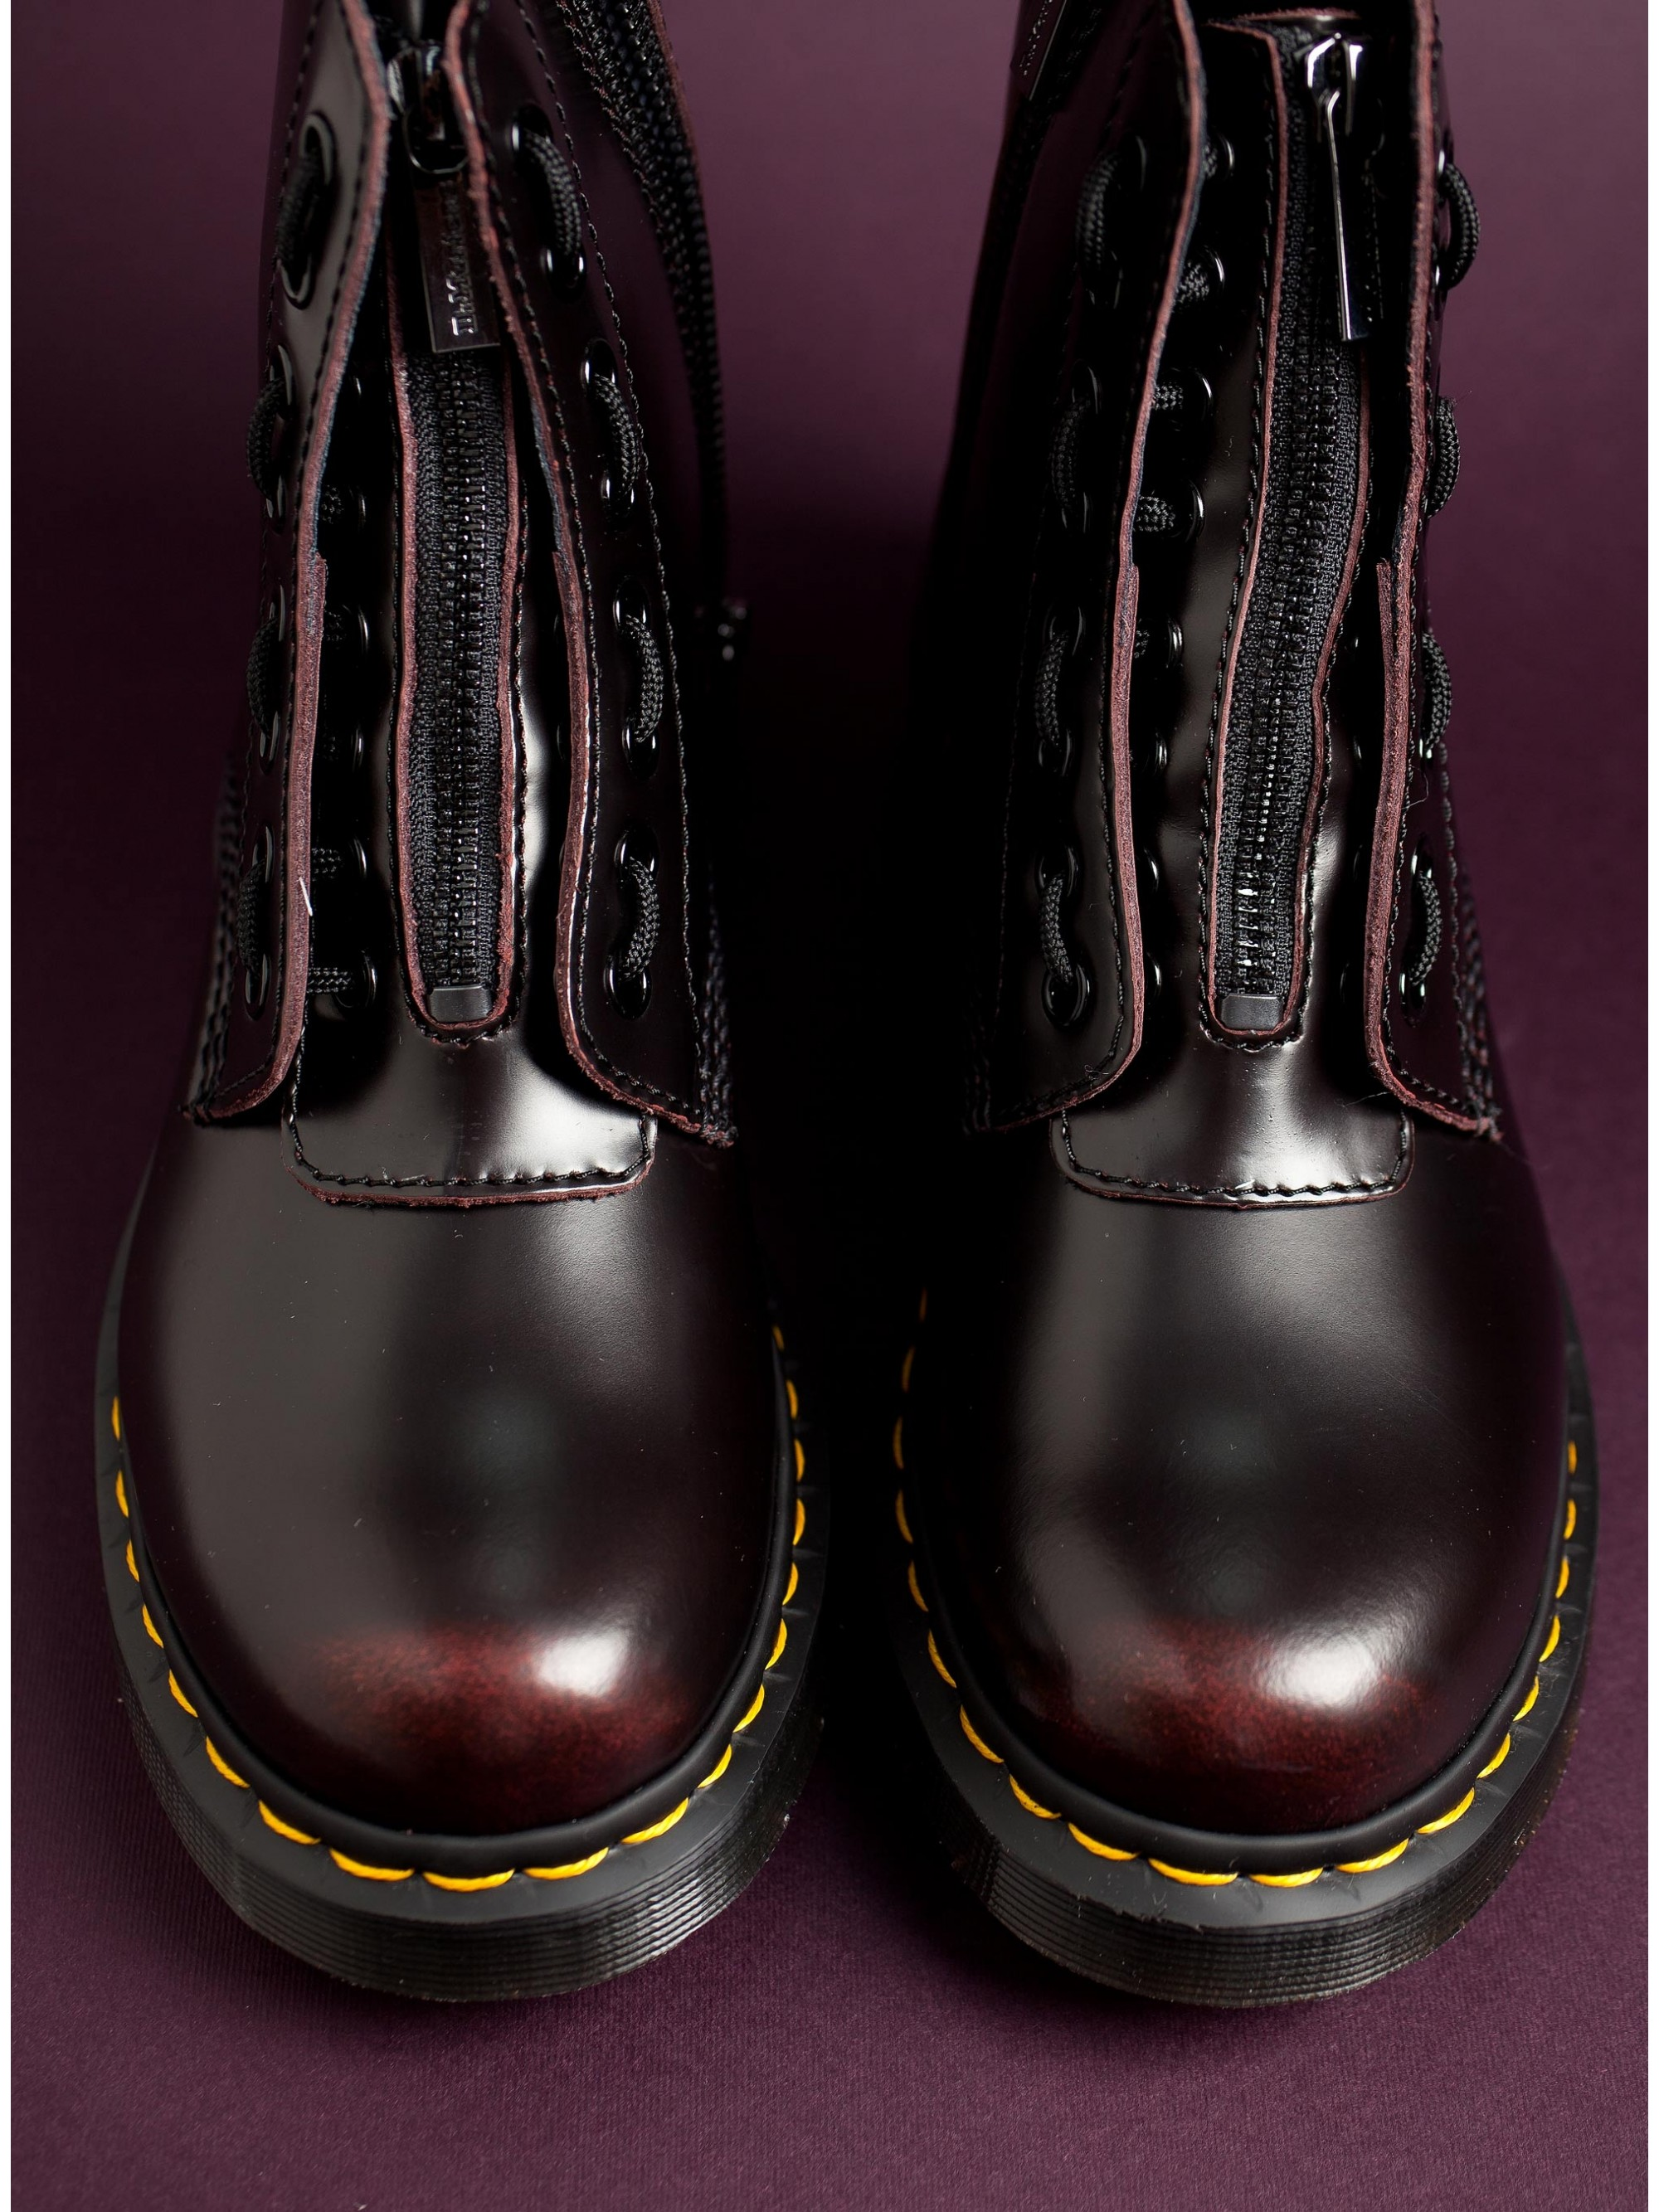 755a5c1a7971f ... Dr Martens 1460 Pascal Front Zip 8-Eye Boots-Bordeaux. Tap to expand ·  Tap to expand · Tap to expand